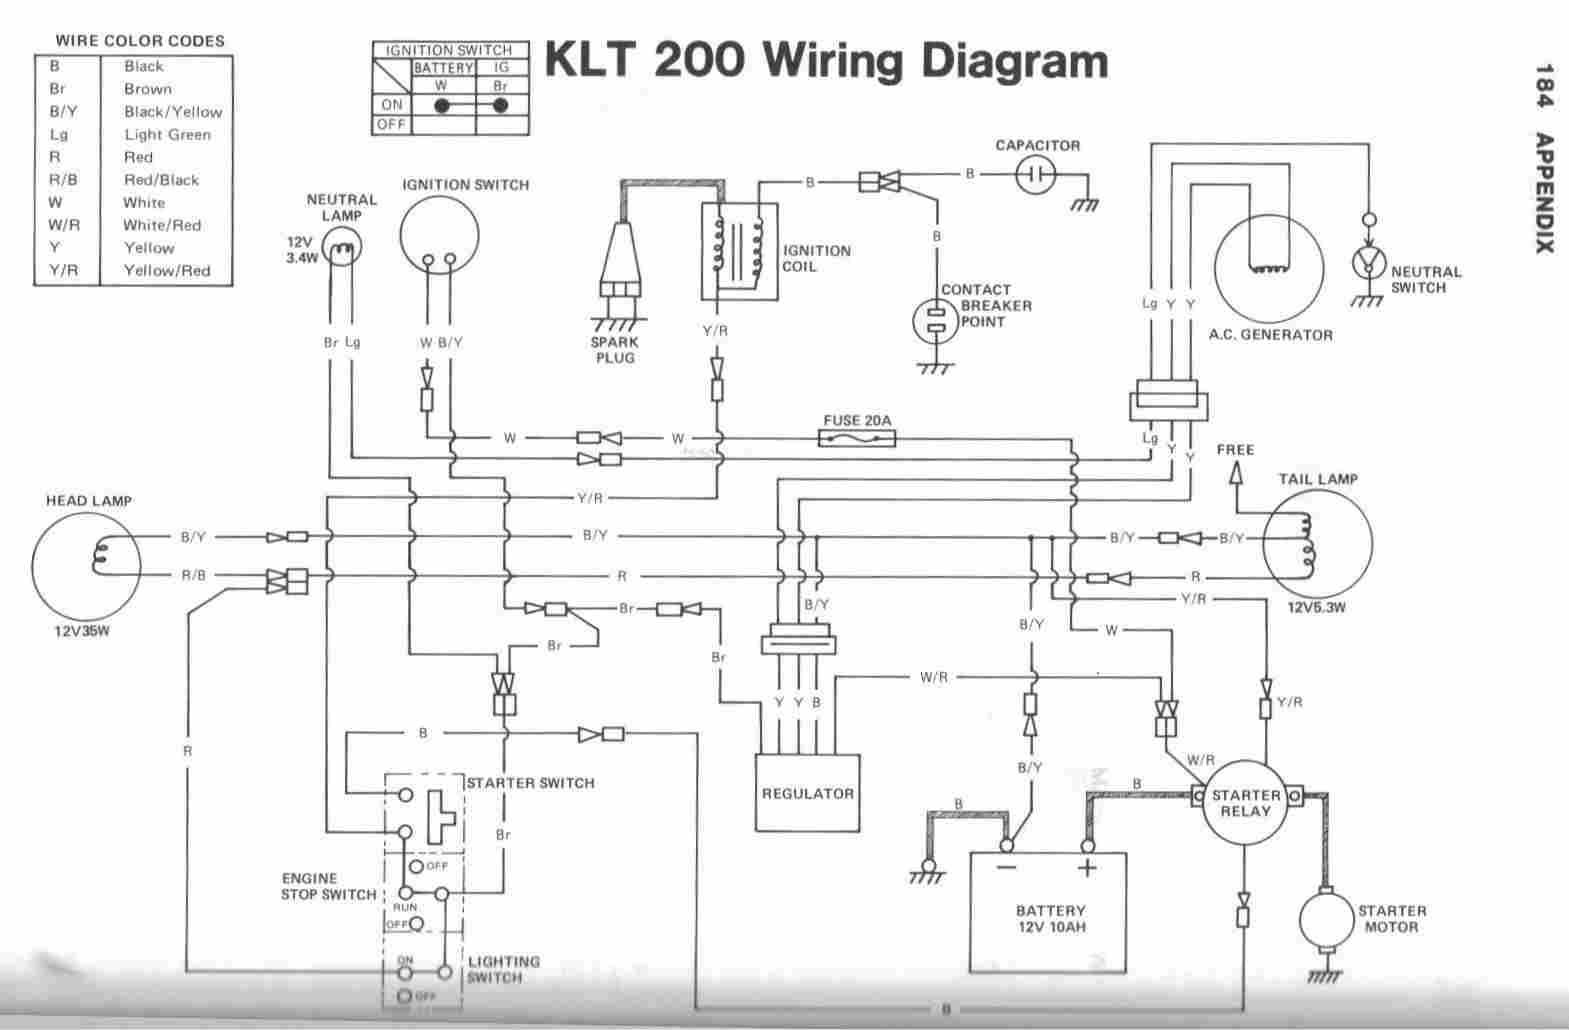 2869034594ce054a636782e5c44b61b4 residential electrical wiring diagrams pdf easy routing cool power wiring diagram deluxe space invaders at readyjetset.co